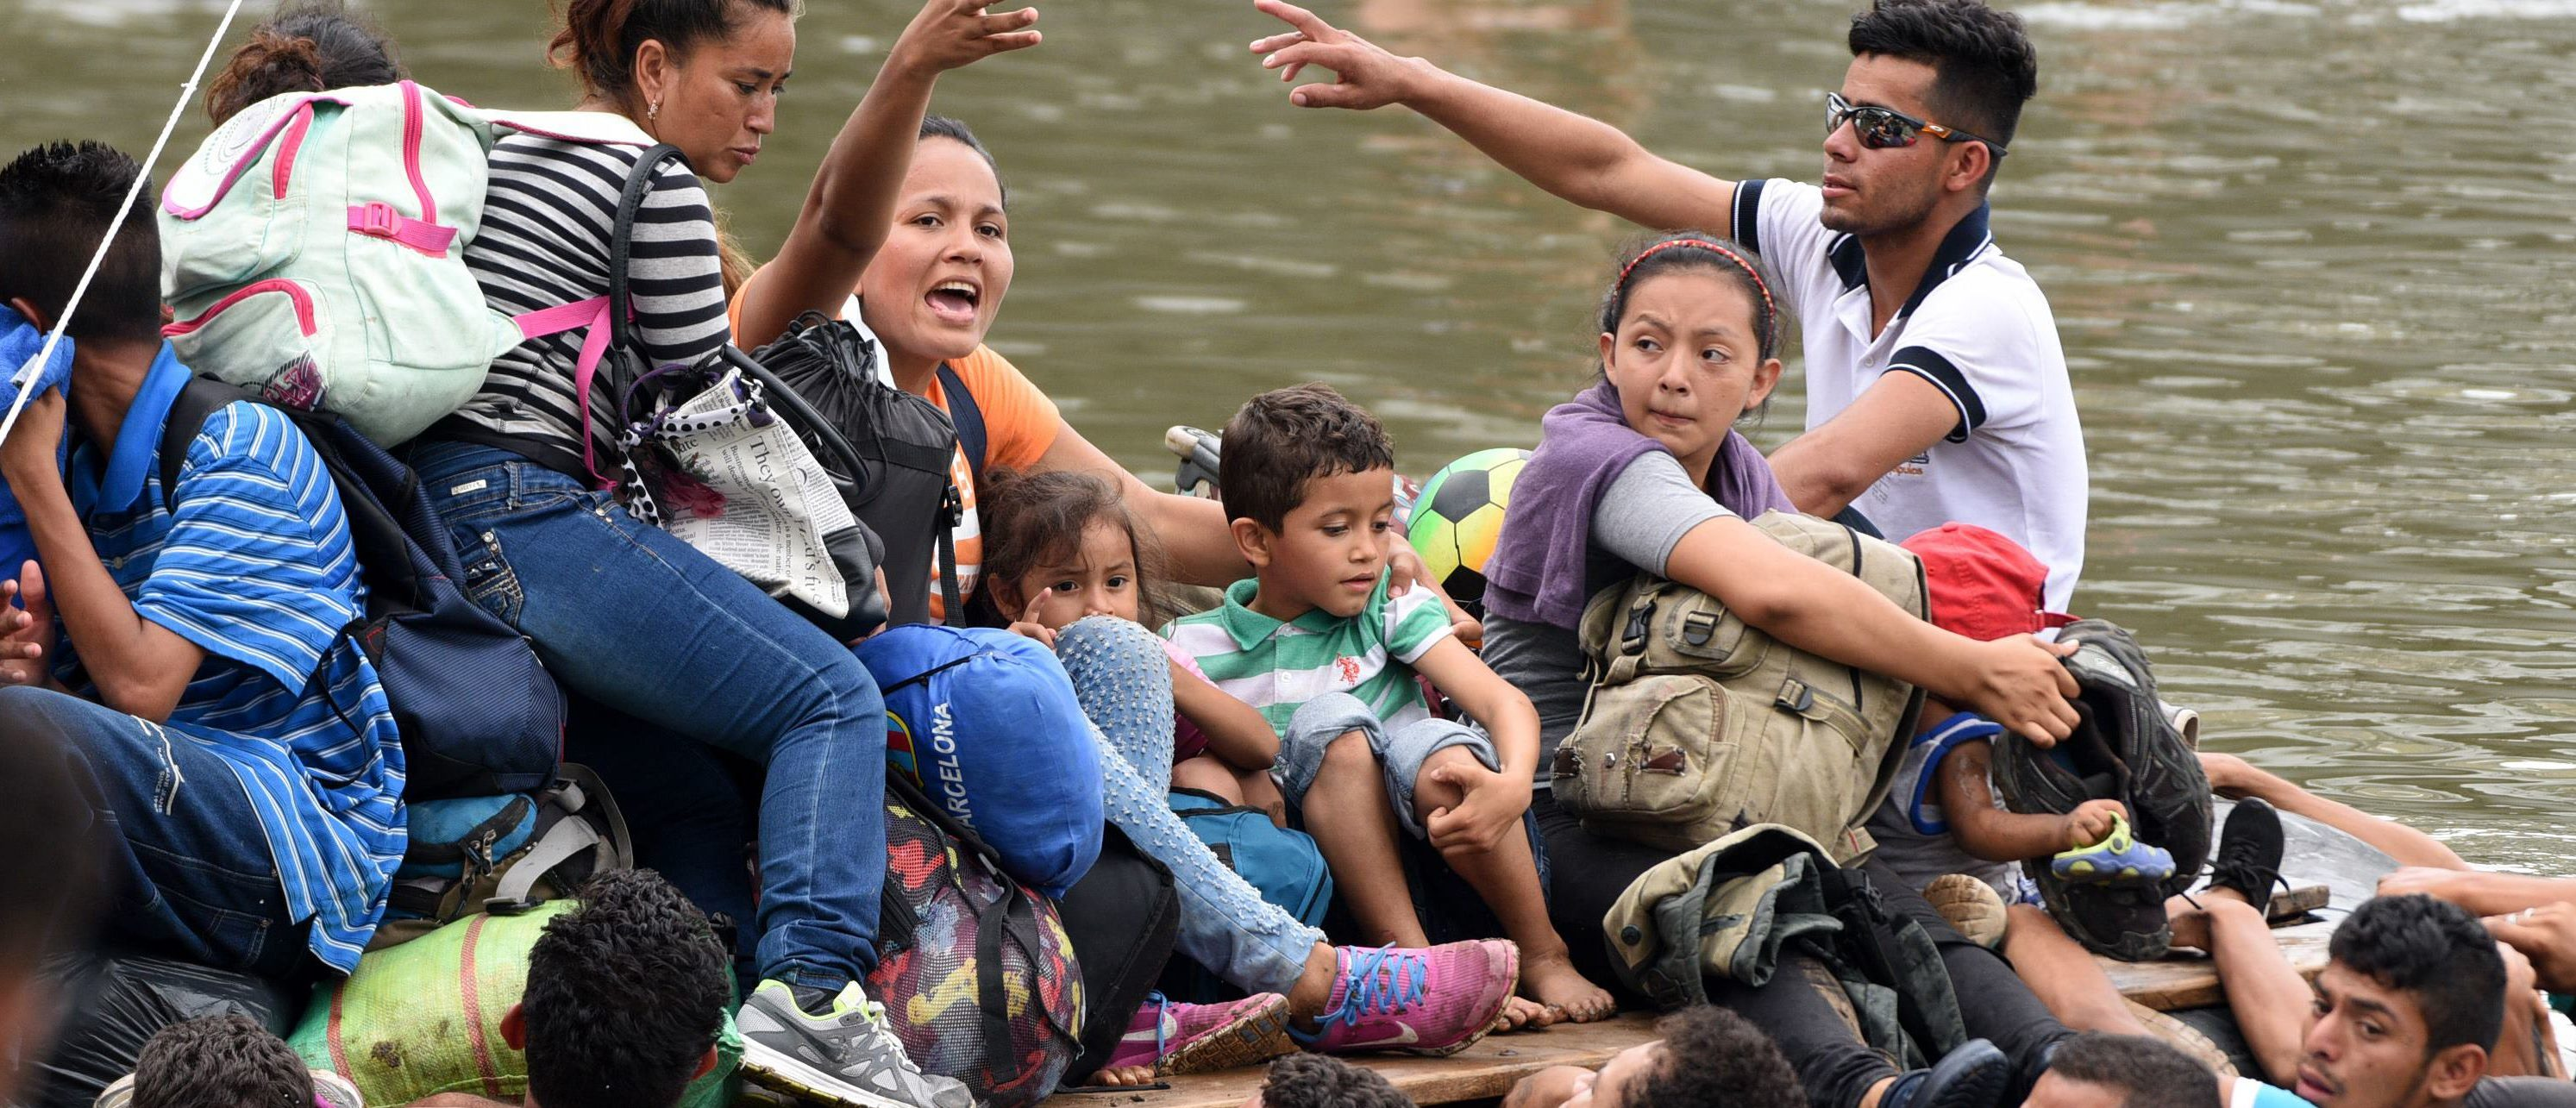 Honduran migrants taking part in a caravan to the US, cross the Suchiate River, natural border between Guatemala and Mexico, in Ciudad Tecun Uman, Guatemala, on October 20, 2018. - Thousands of migrants who forced their way through Guatemala's northwestern border and flooded onto a bridge leading to Mexico, where riot police battled them back, on Saturday waited at the border in the hope of continuing their journey to the United States. (Photo by ORLANDO SIERRA / AFP)